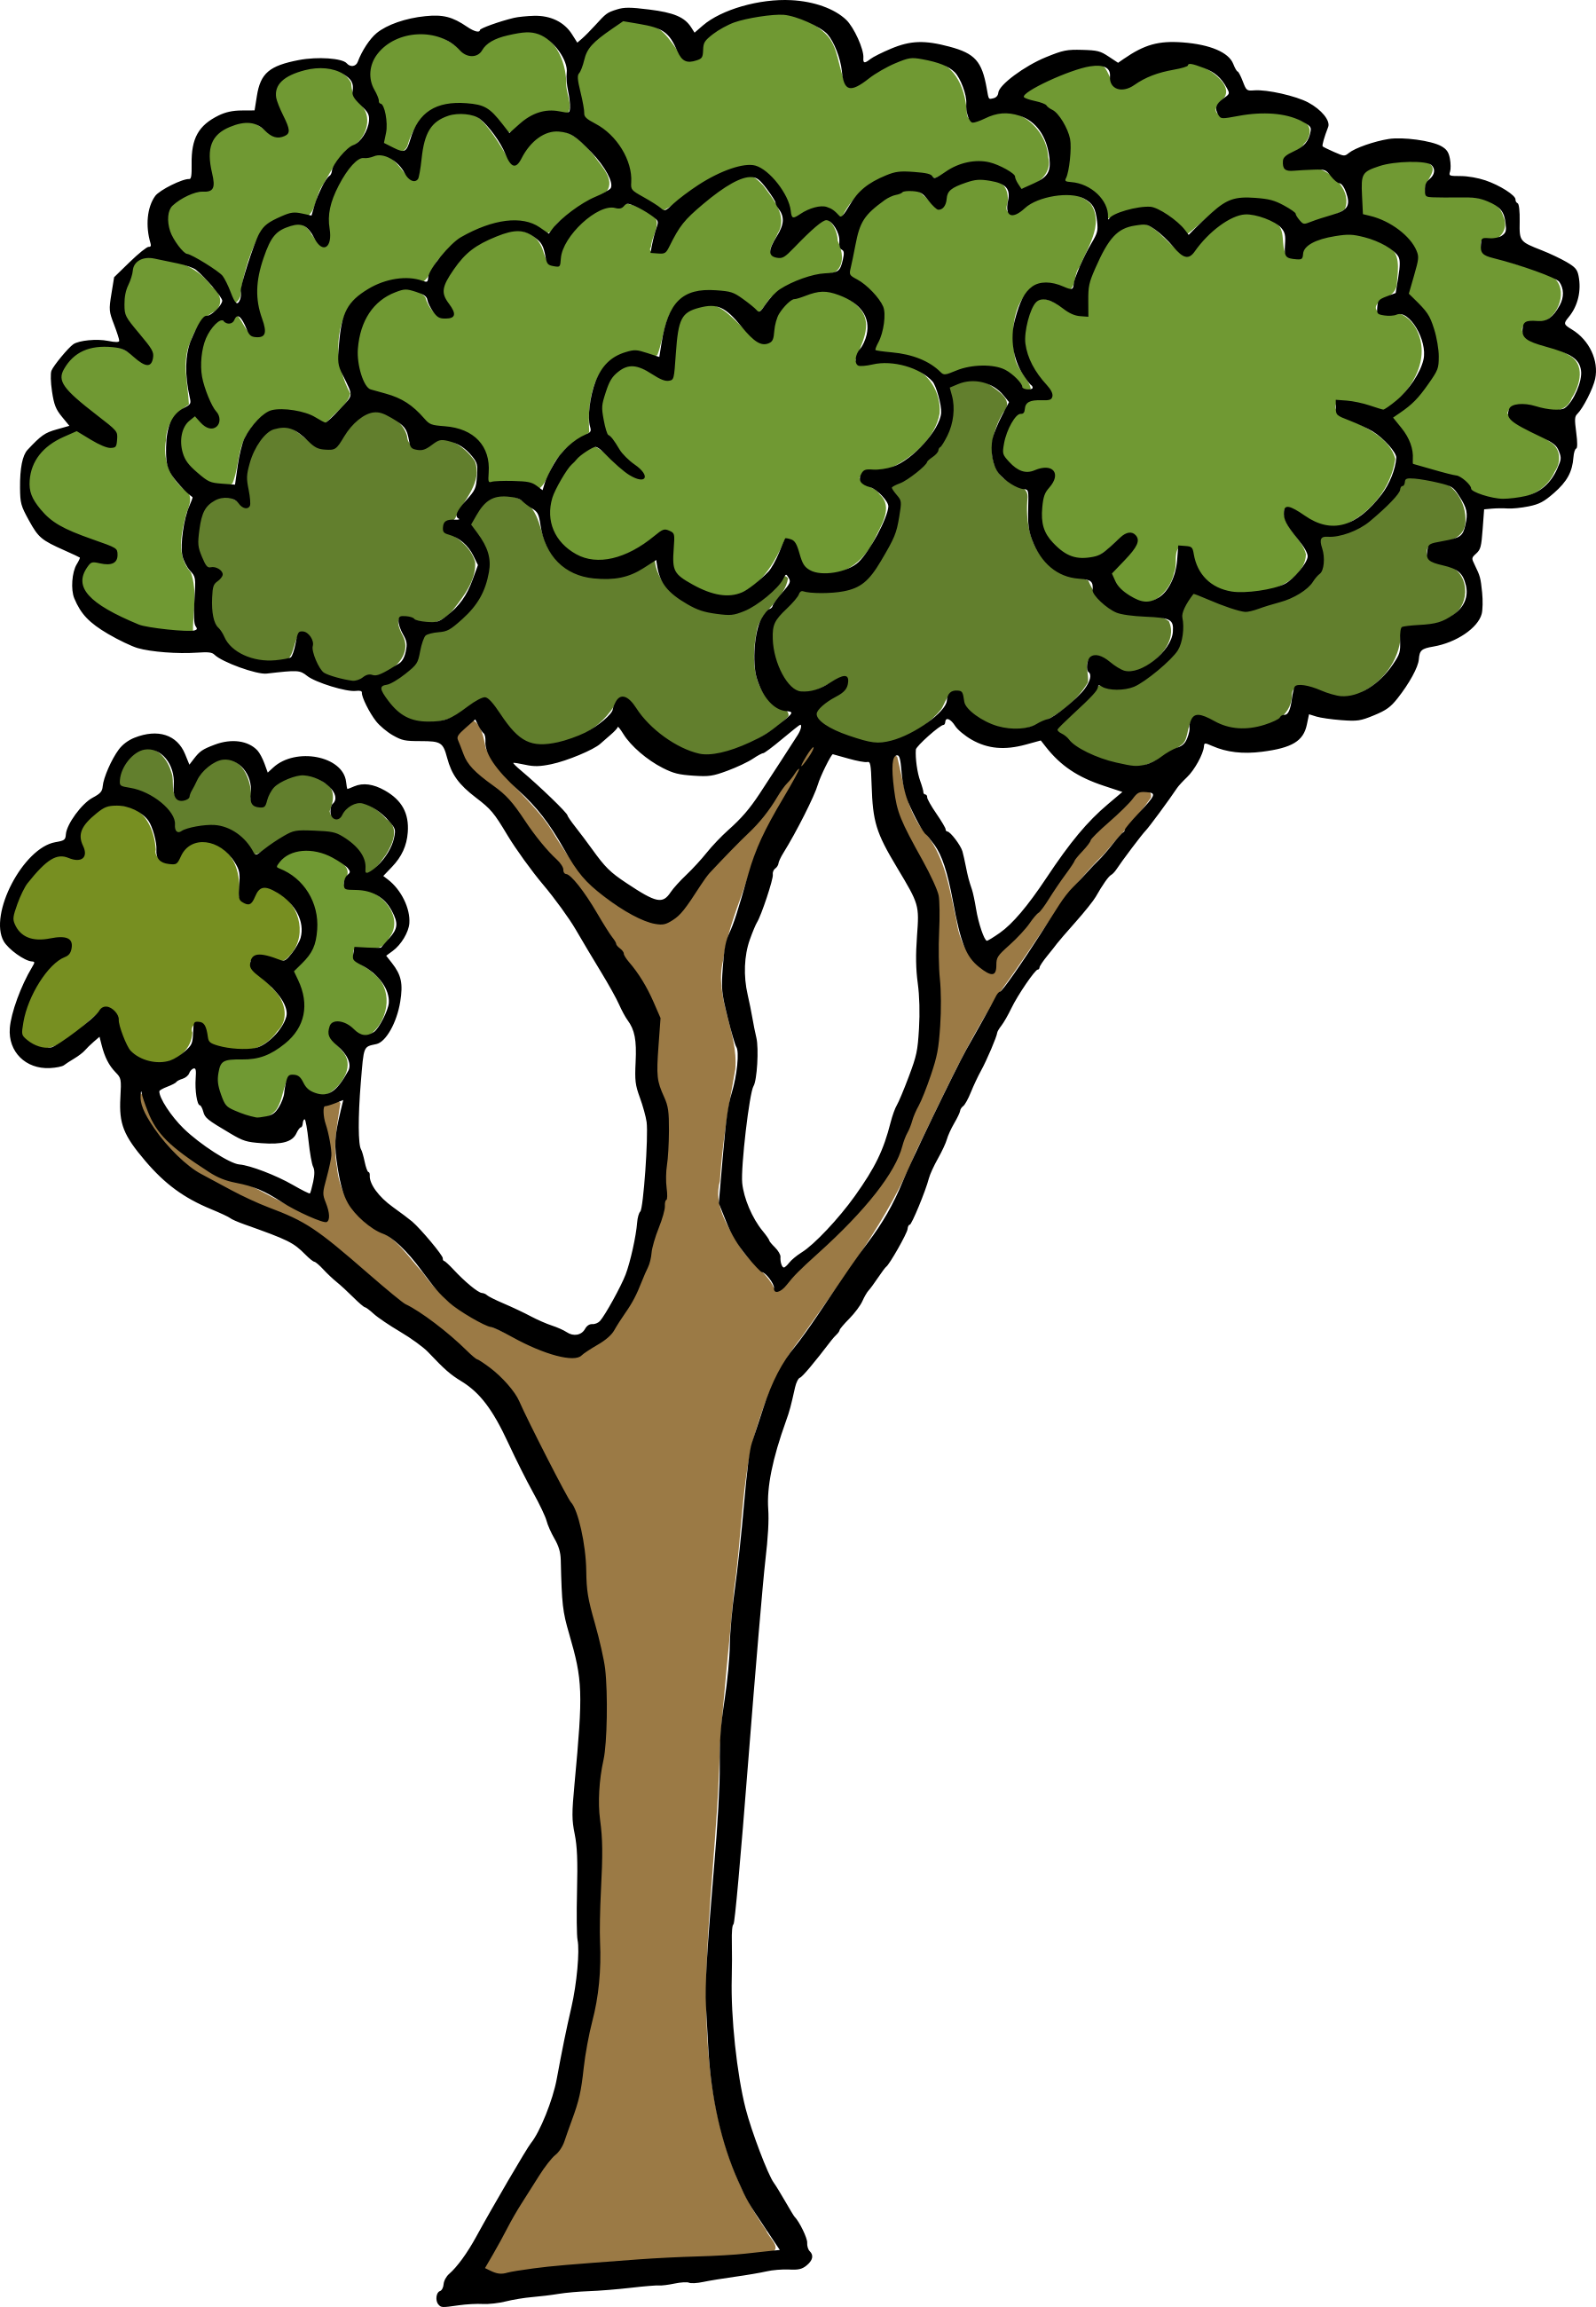 cartoon-tree-1.png